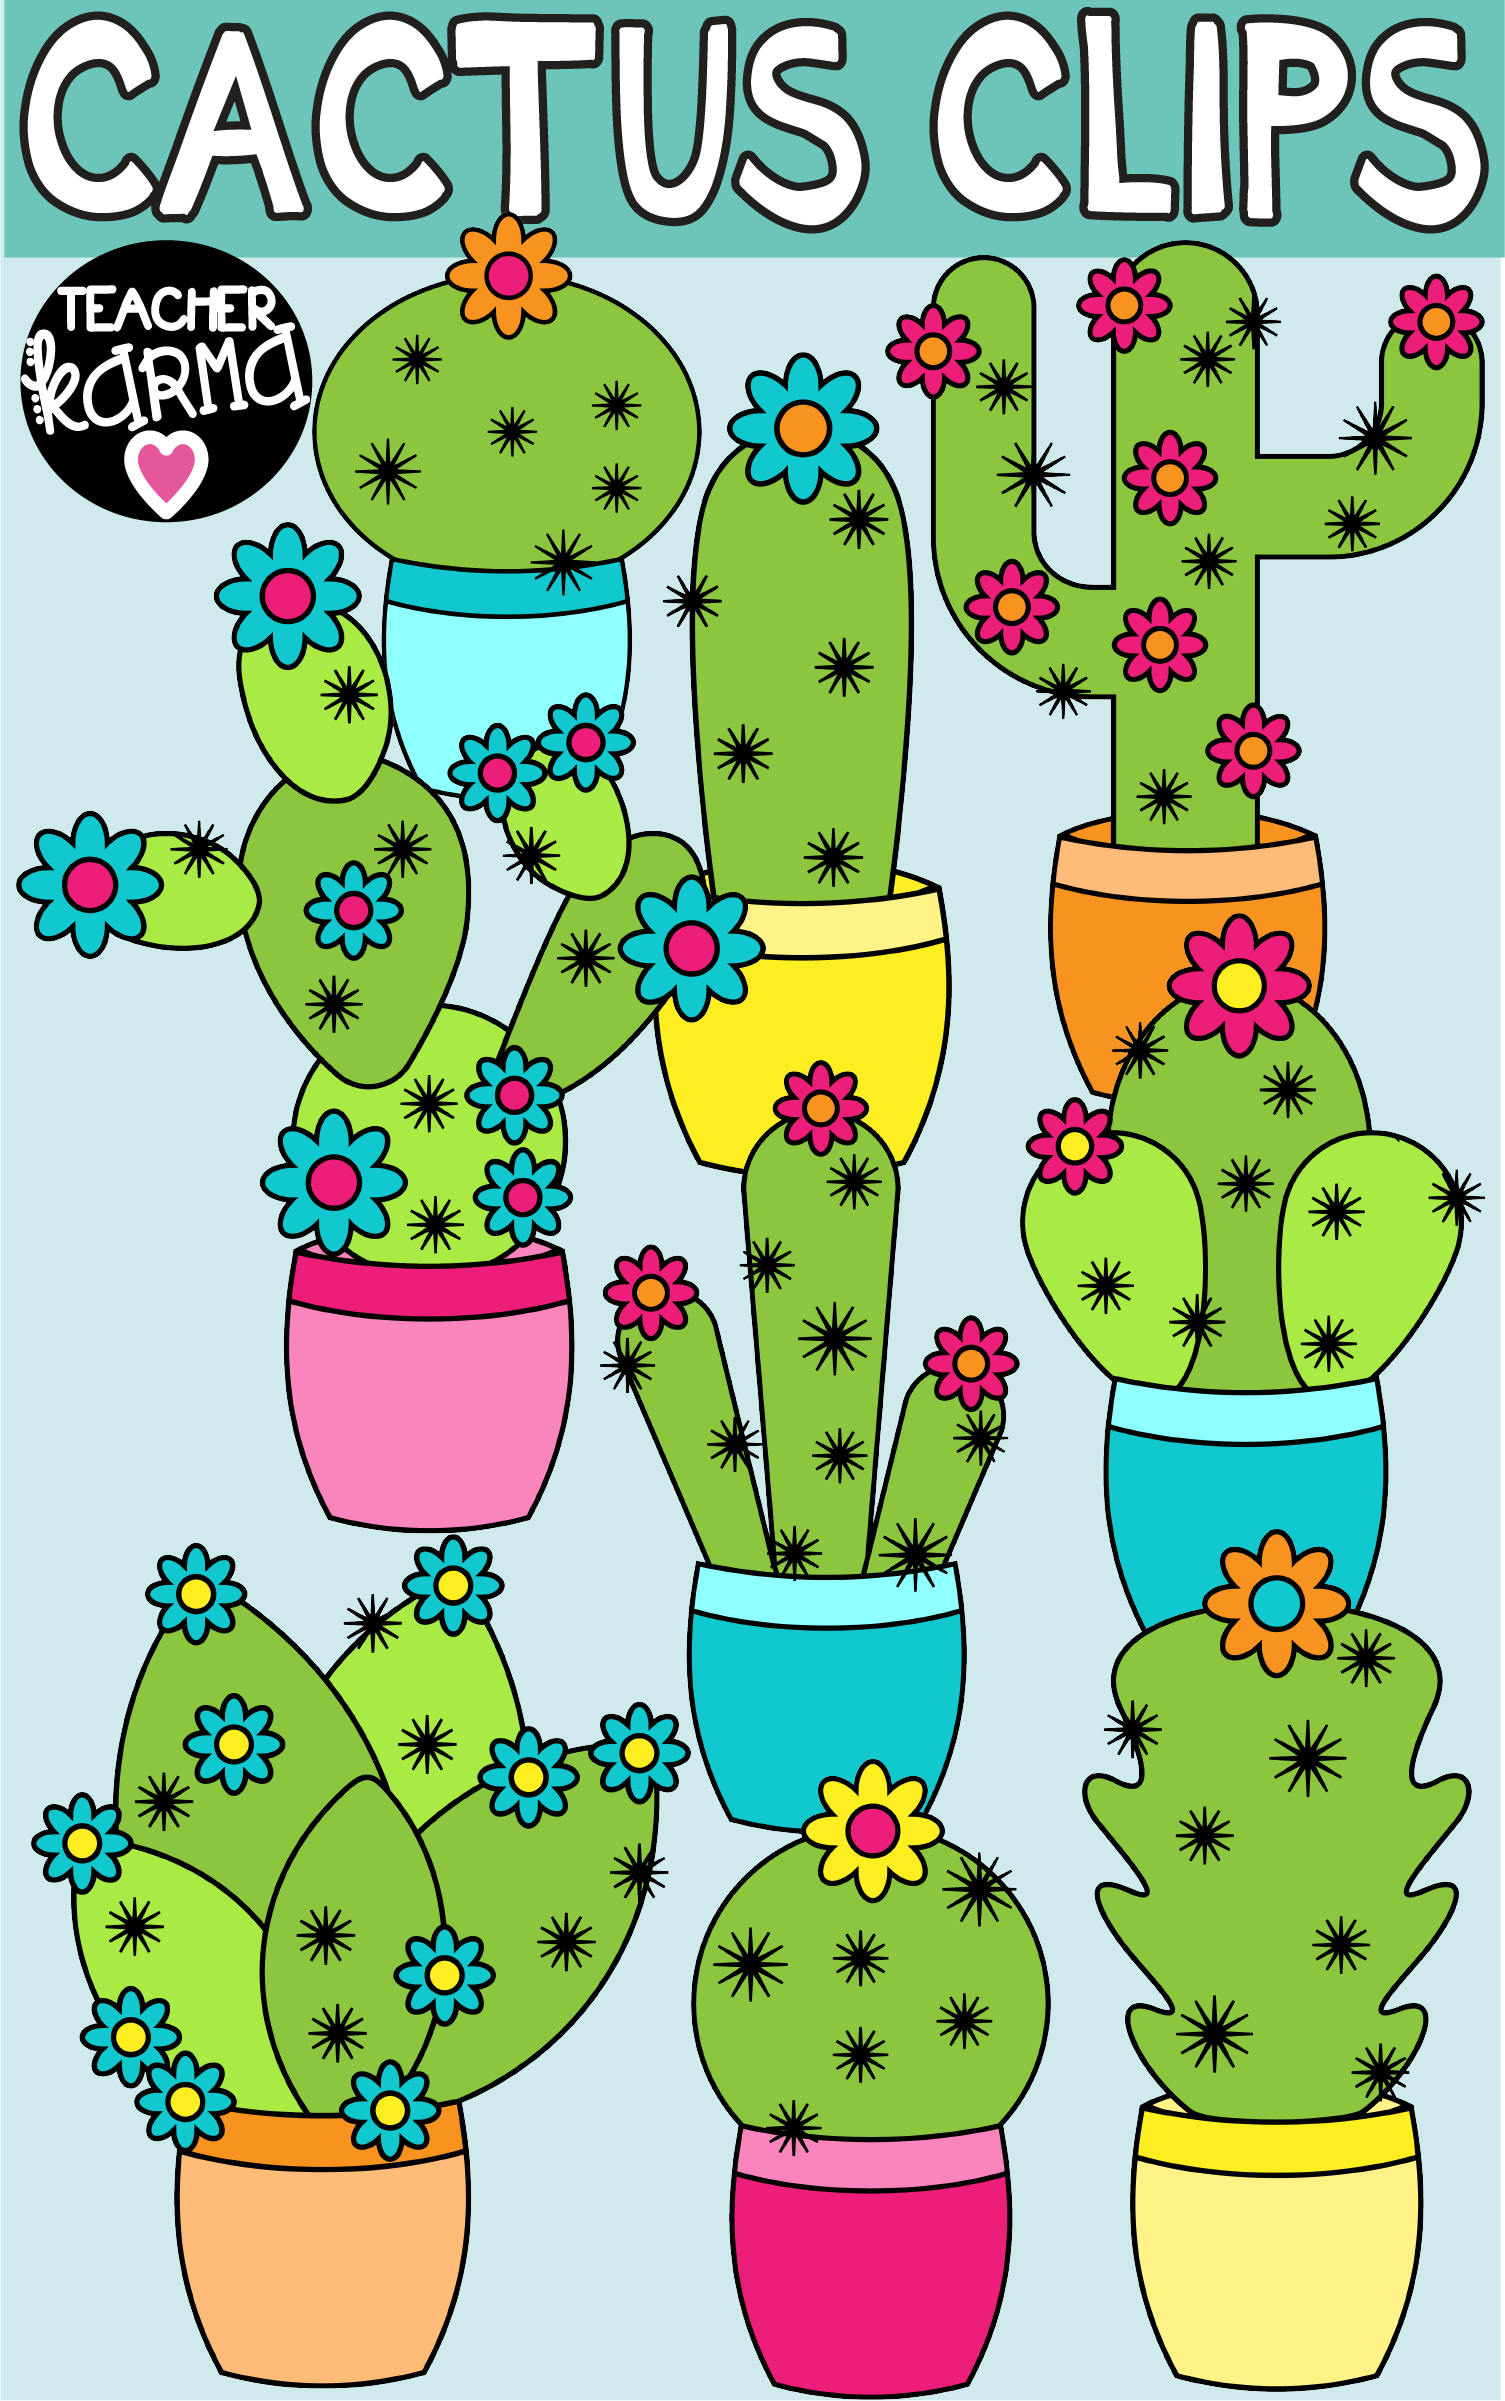 hight resolution of cactus clipart is perfect for classroom decor teacher organization or to create products to sell on tpt cacti graphics are ok for commercial use